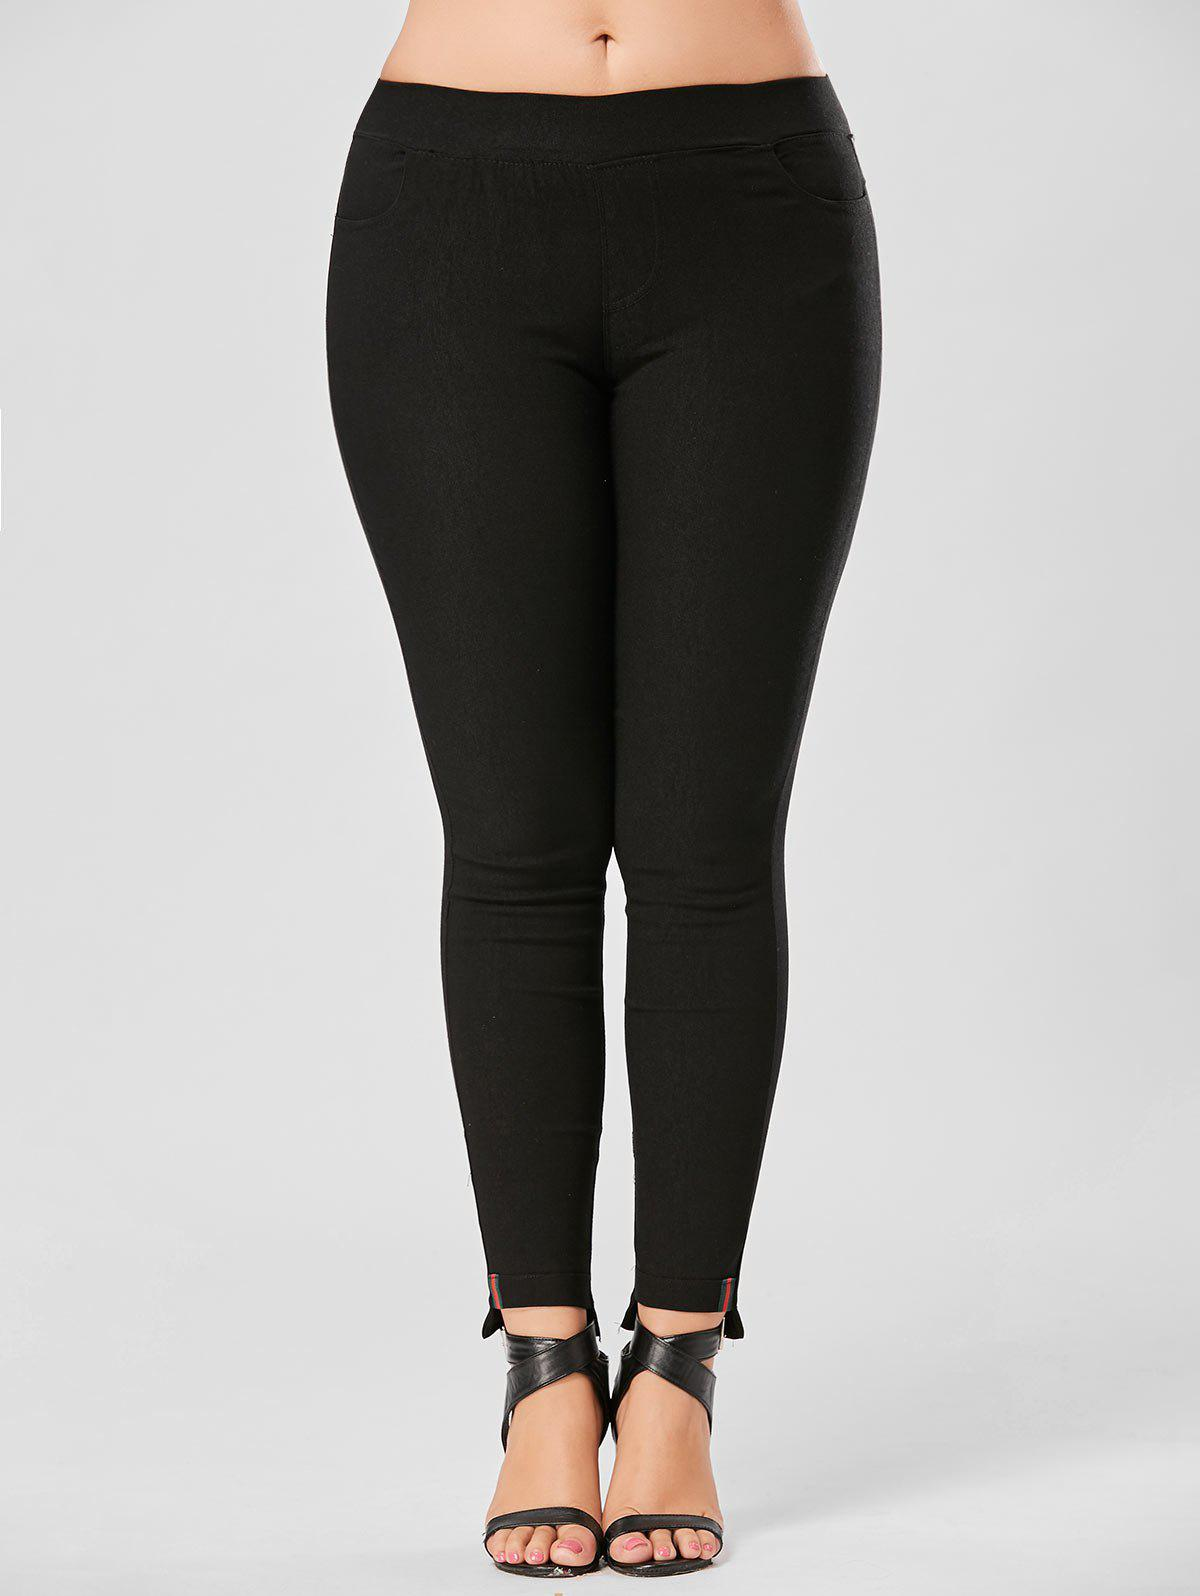 Elastic Waist Plus Size Pencil PantsWOMEN<br><br>Size: 6XL; Color: BLACK; Style: Casual; Length: Normal; Material: Cotton,Polyester; Fit Type: Regular; Waist Type: Mid; Closure Type: Elastic Waist; Pattern Type: Solid; Pant Style: Pencil Pants; Weight: 0.3500kg; Package Contents: 1 x Pants;